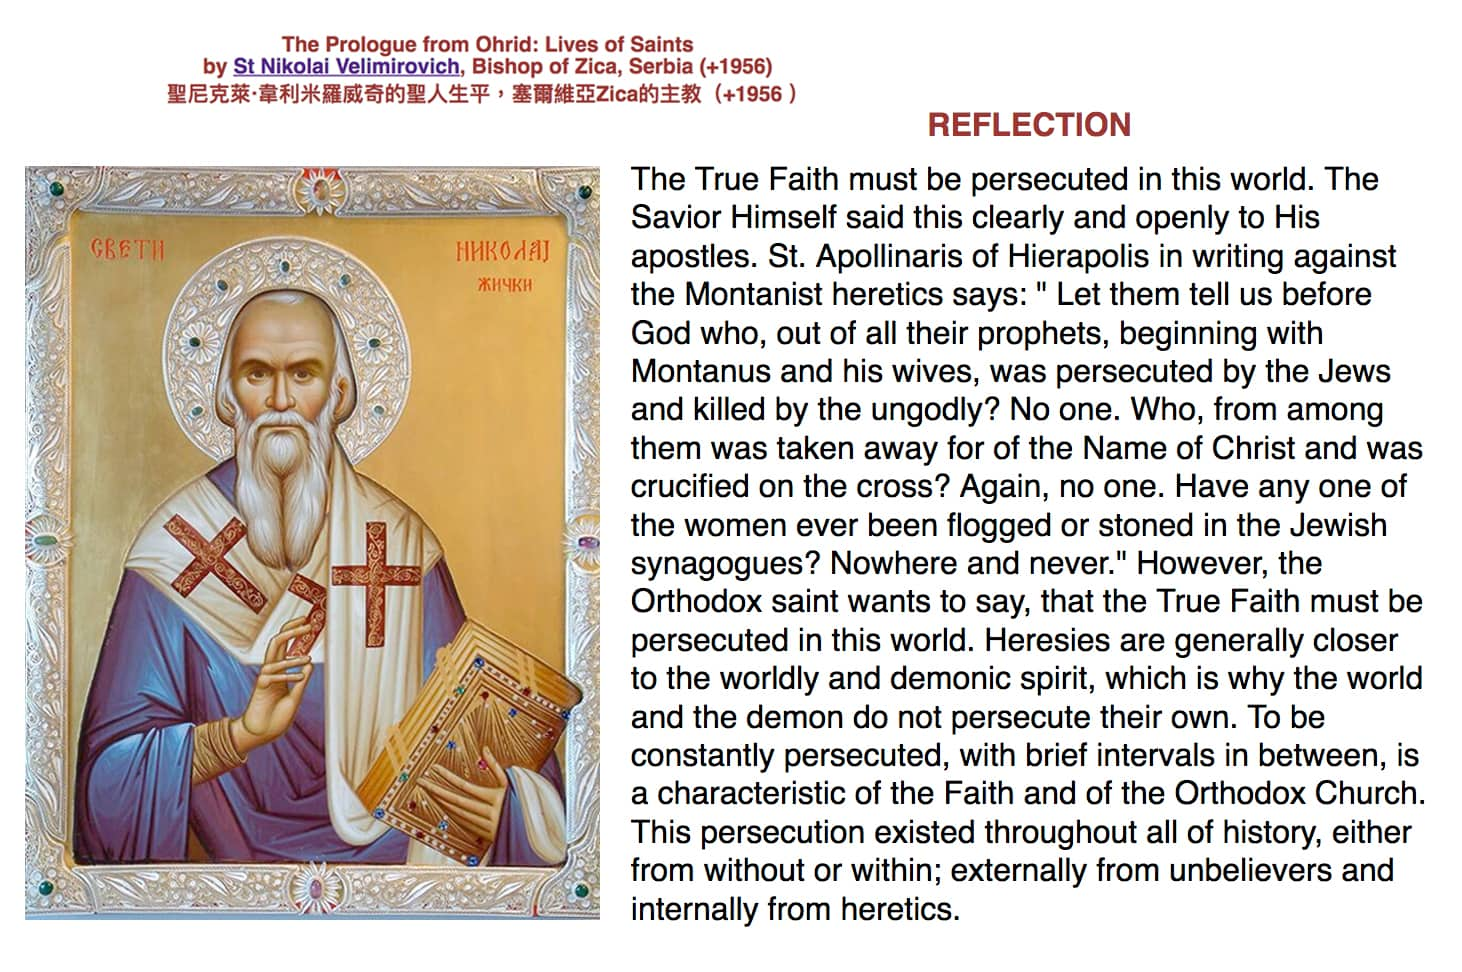 True faith must be persecuted